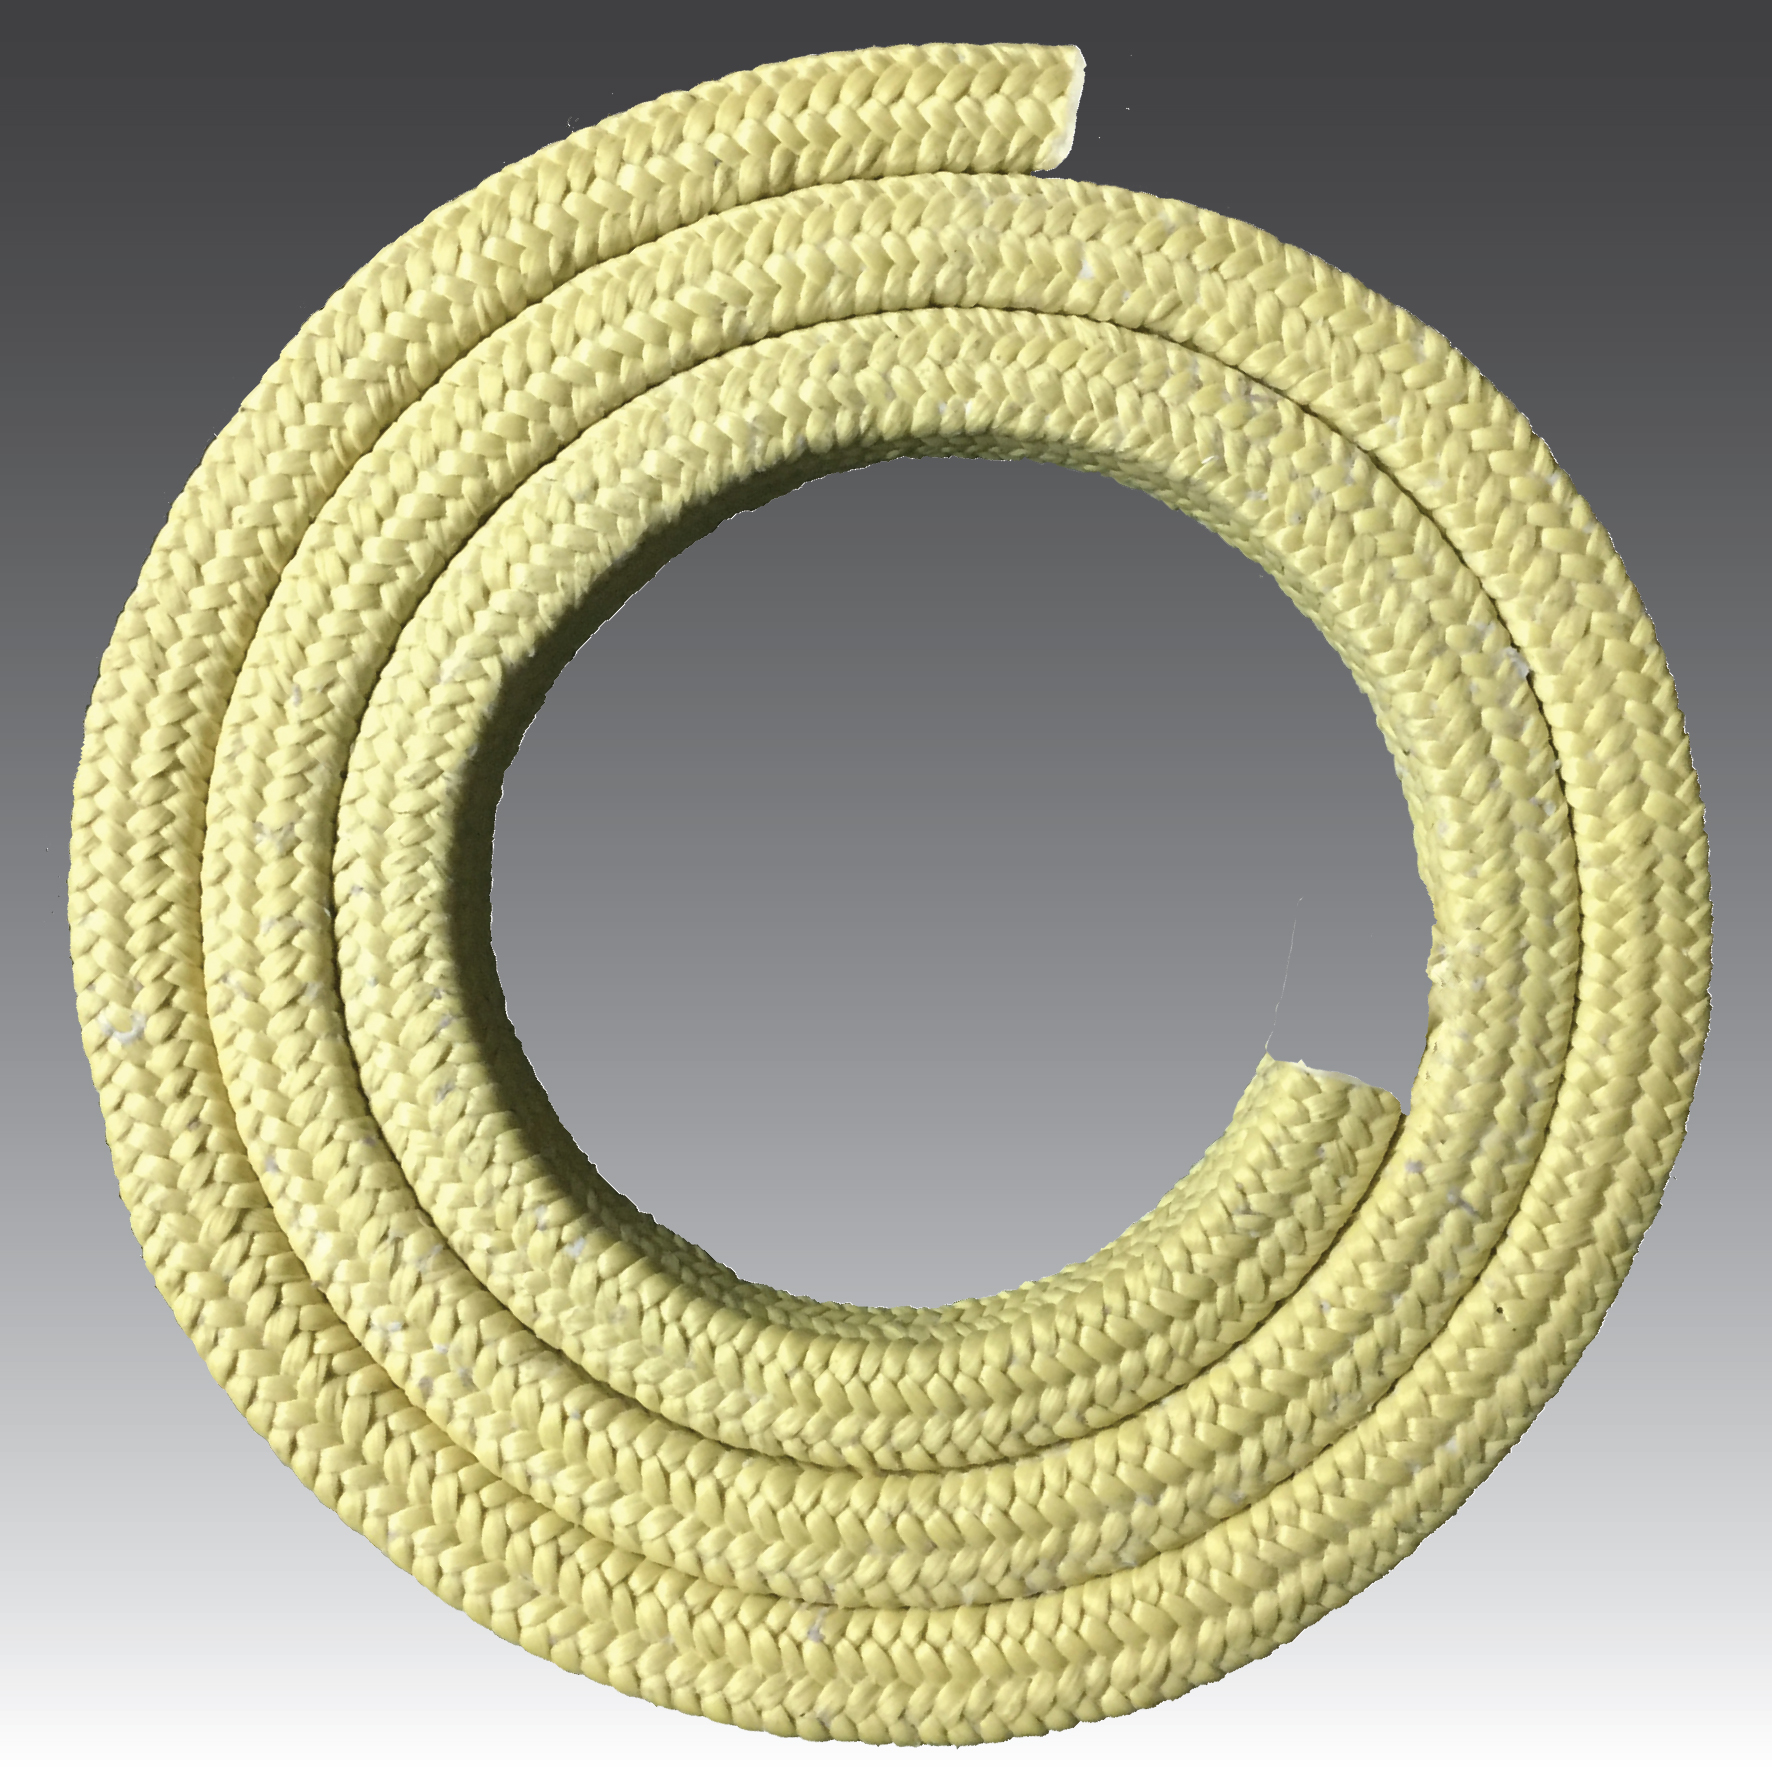 Aramid fibers treated with lubricants and PTFE